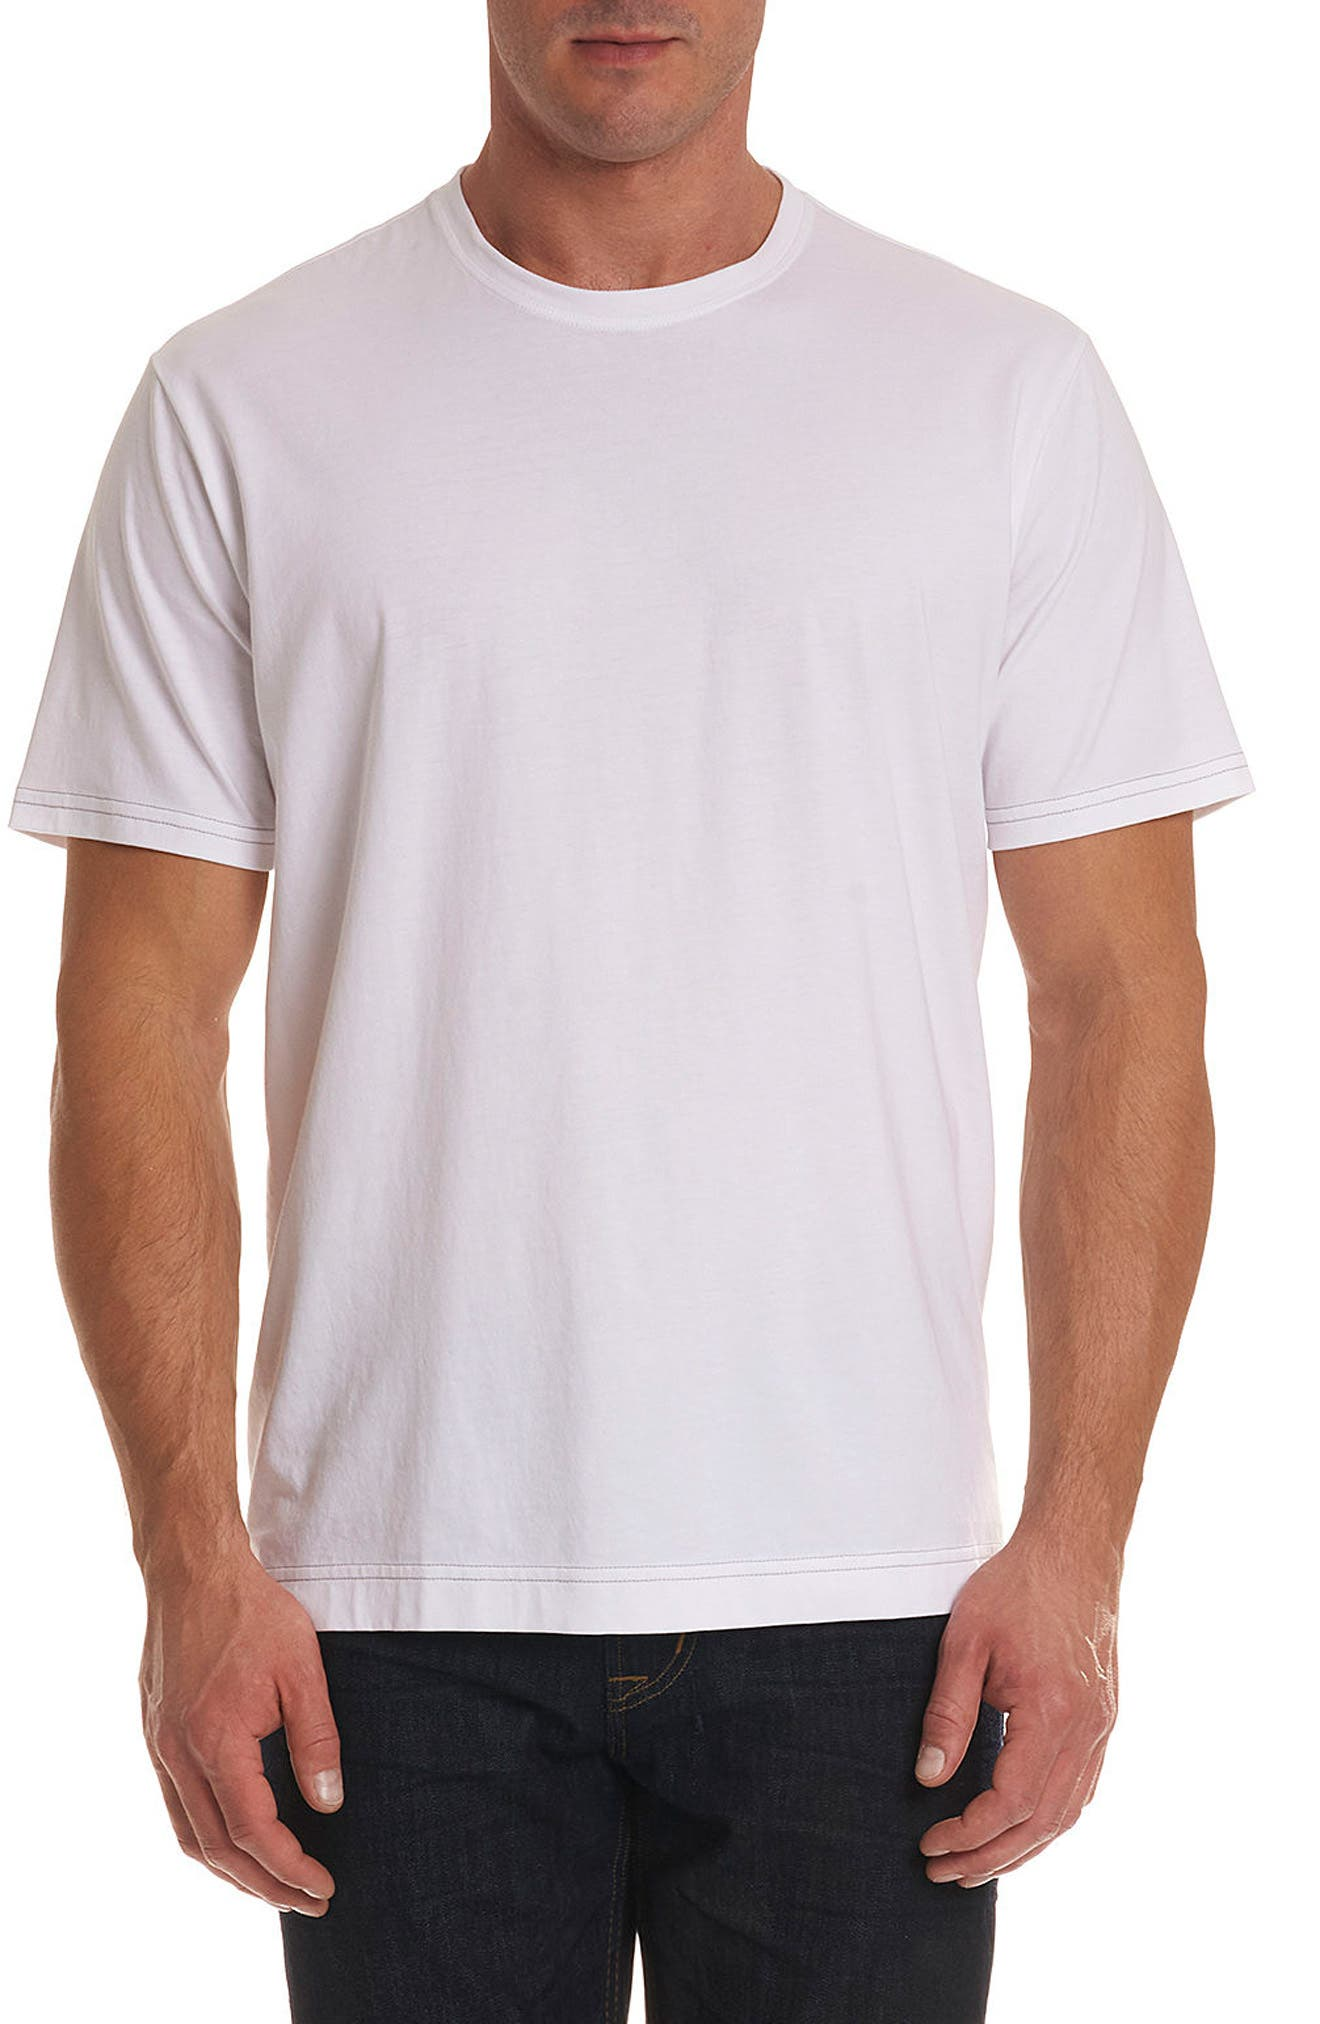 Neo T-Shirt,                         Main,                         color, White